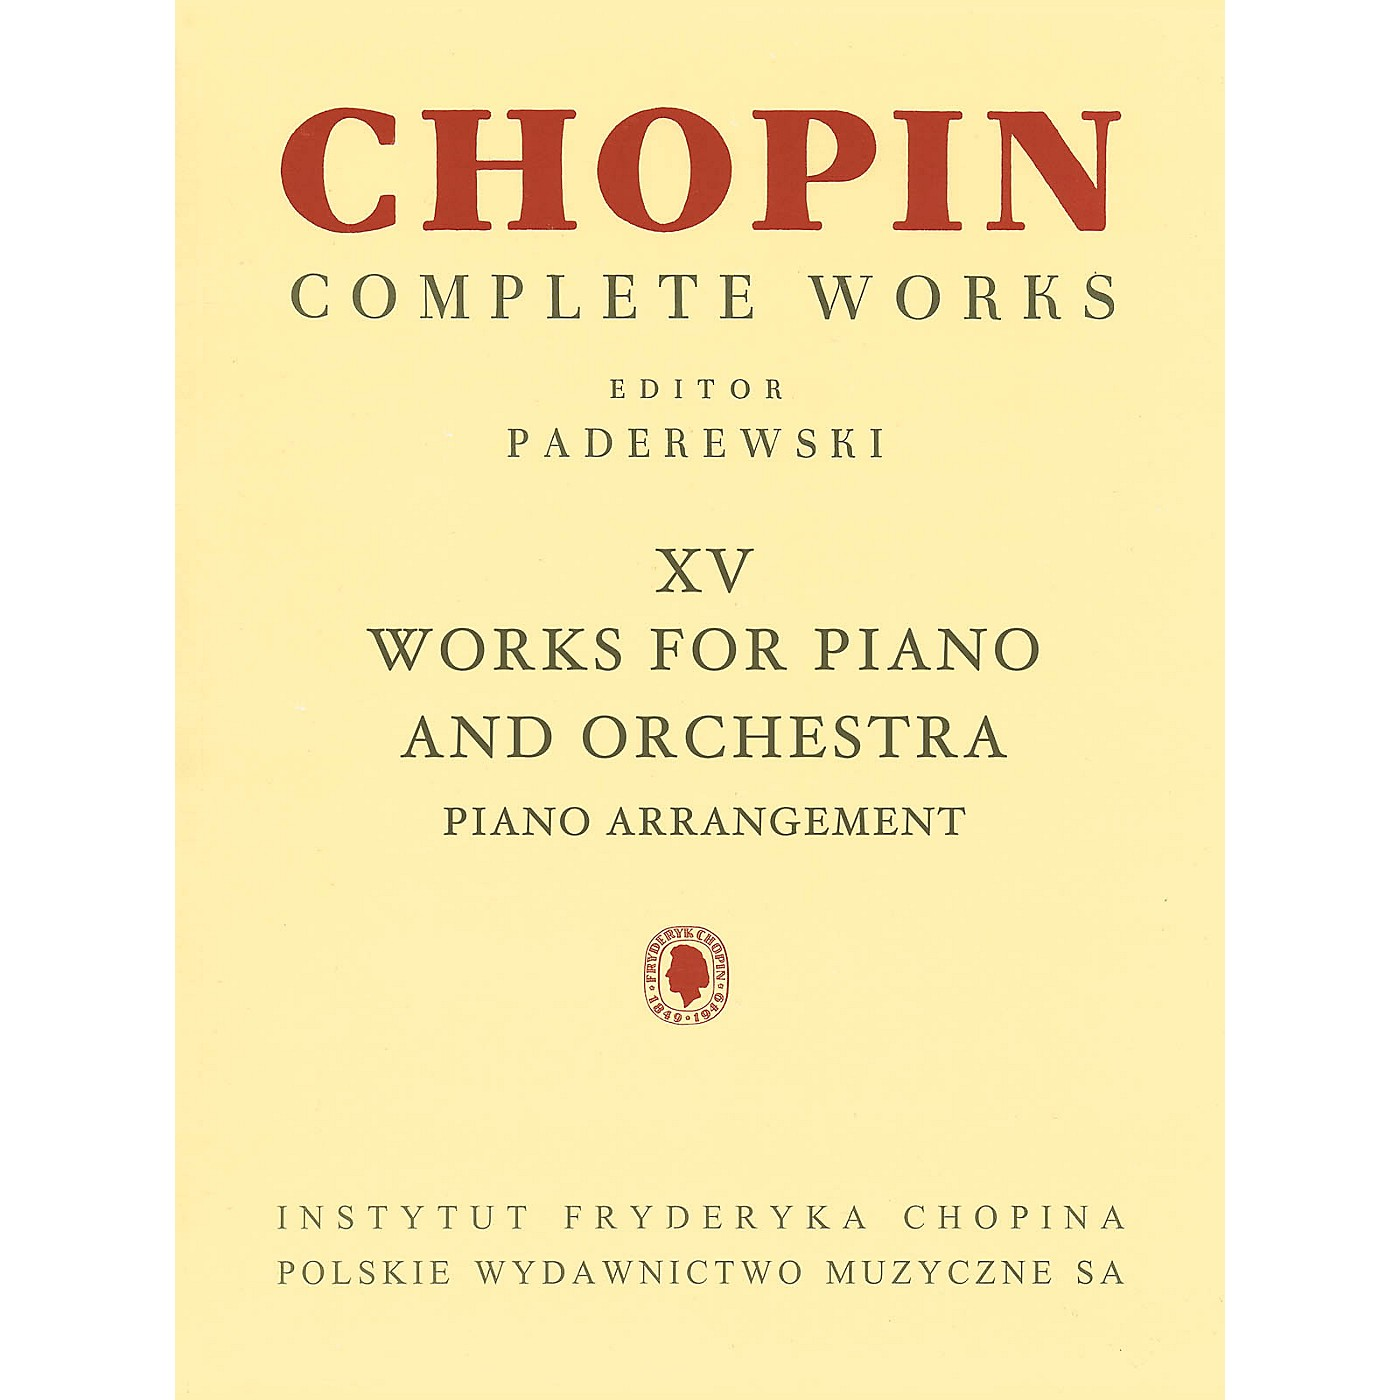 PWM Works for Piano and Orchestra (2 Pianos Reduction) (Chopin Complete Works Vol. XV) PWM Series thumbnail